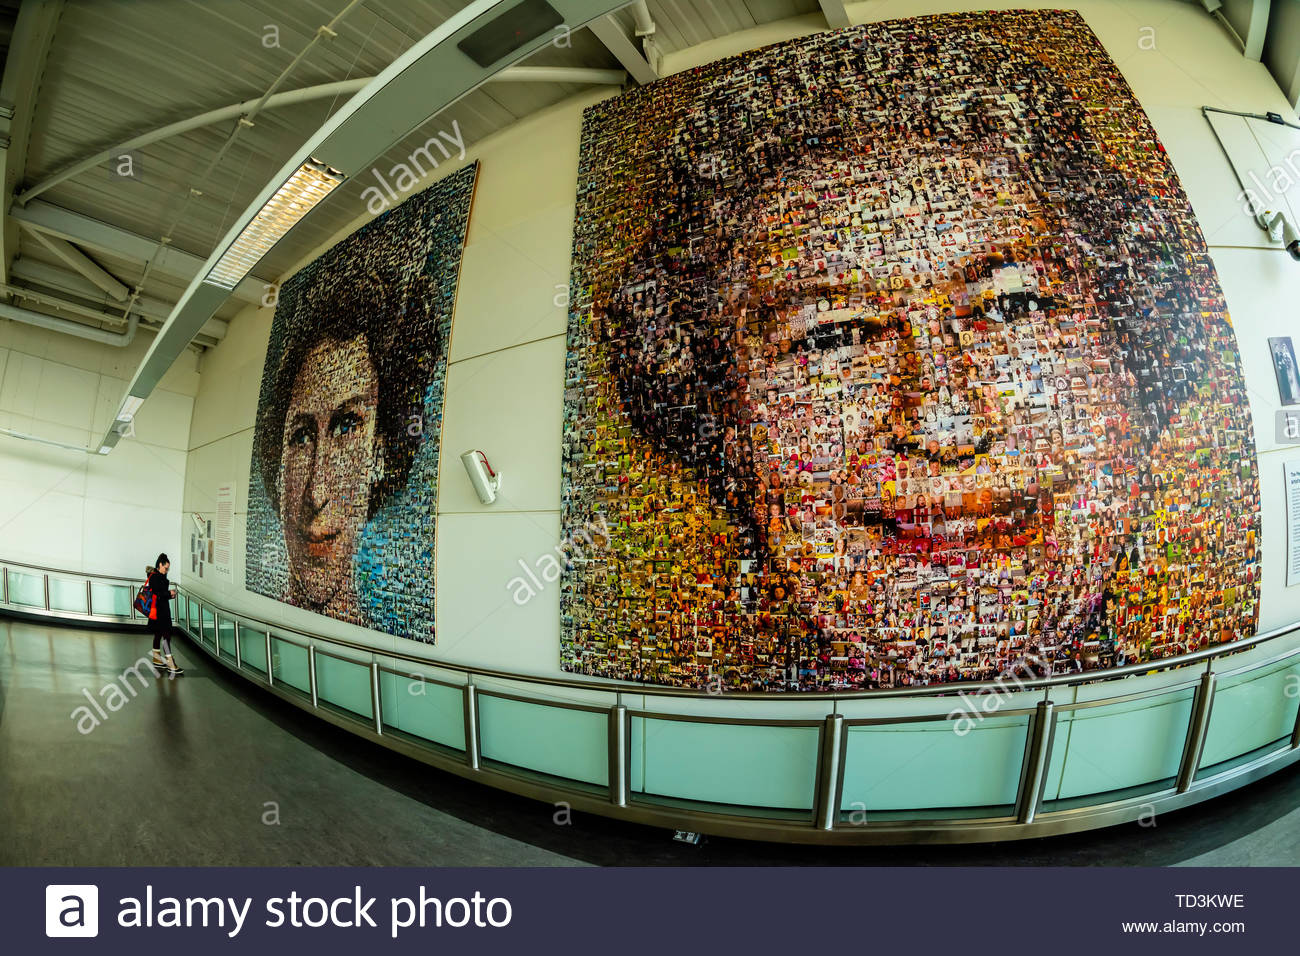 On display at London Gatwick Airport is a BBC South East Jubilee Art Project titled 'The People's Monarch.' It uses thousands of photos submitted by v - Stock Image